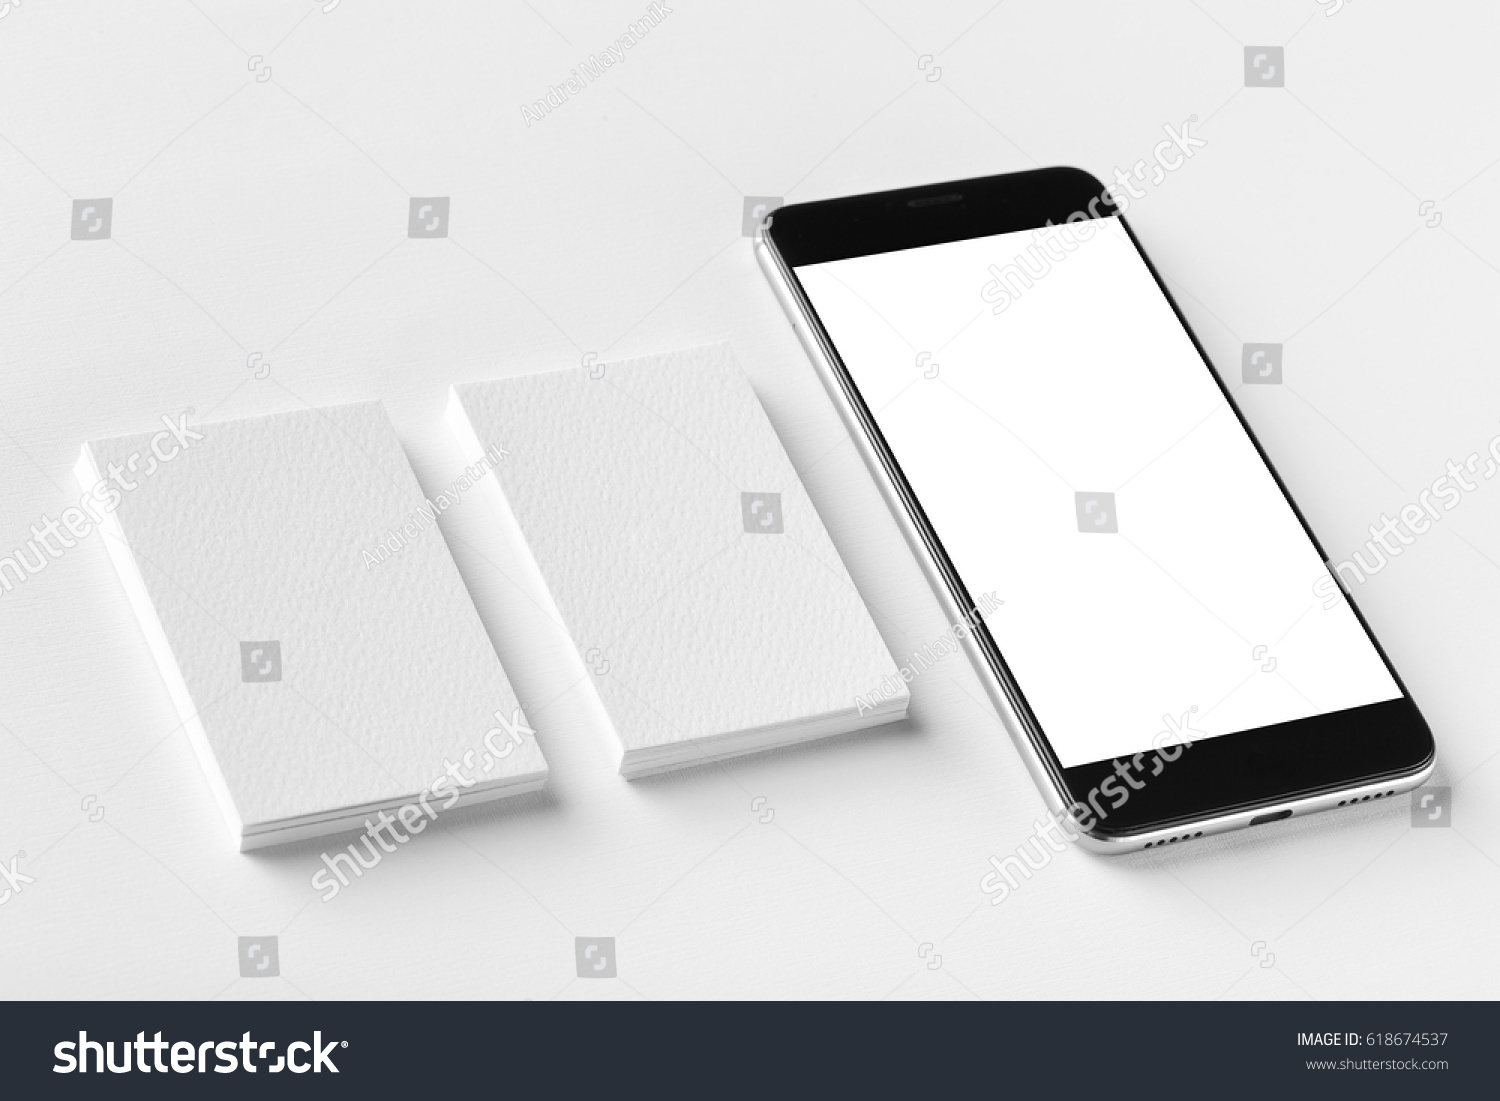 Phone icon business card gallery free business cards cell phone business card gallery free business cards business card phone images free business cards business magicingreecefo Gallery